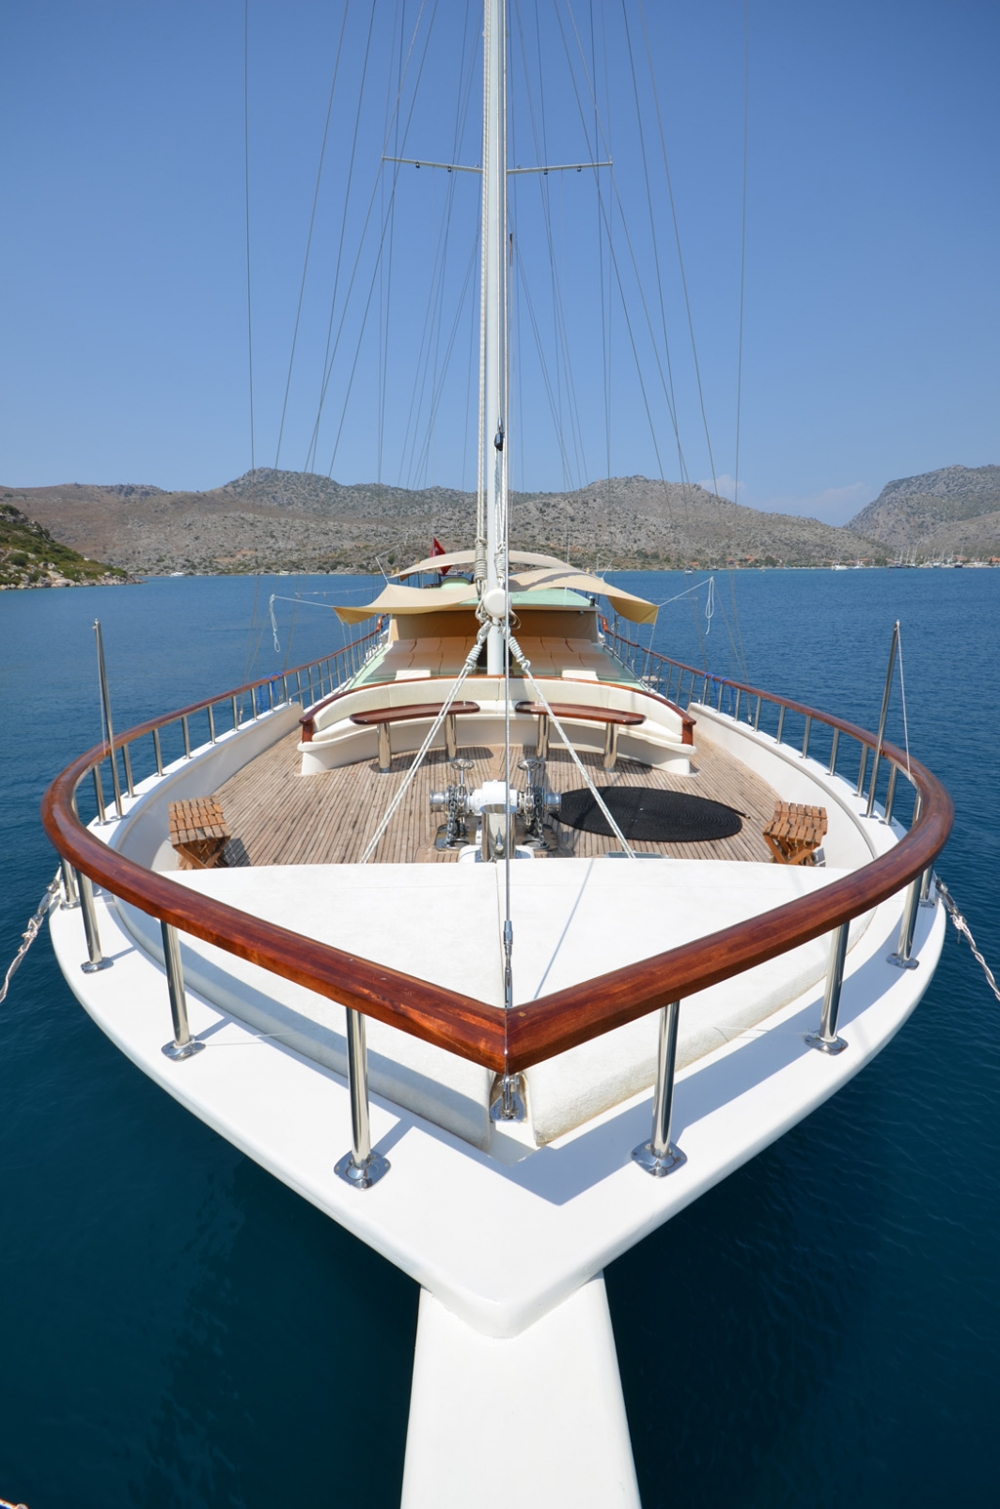 C TANER 2,DELUX GULETS, Yachts for Rent, Yacht Charter, Yacht Rental